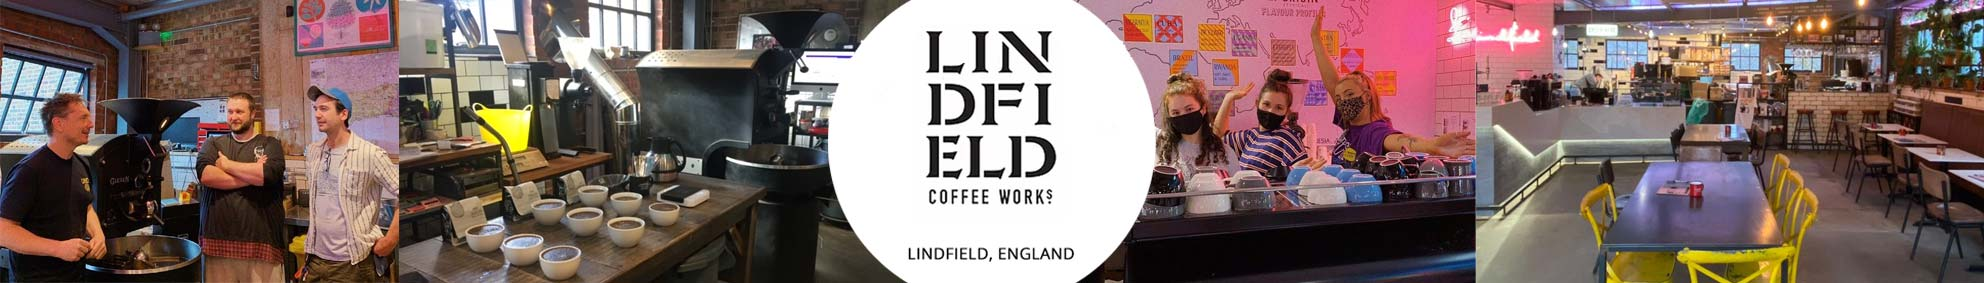 Lindfield Coffee Works Sussex on UK Best Coffee Subscriptions